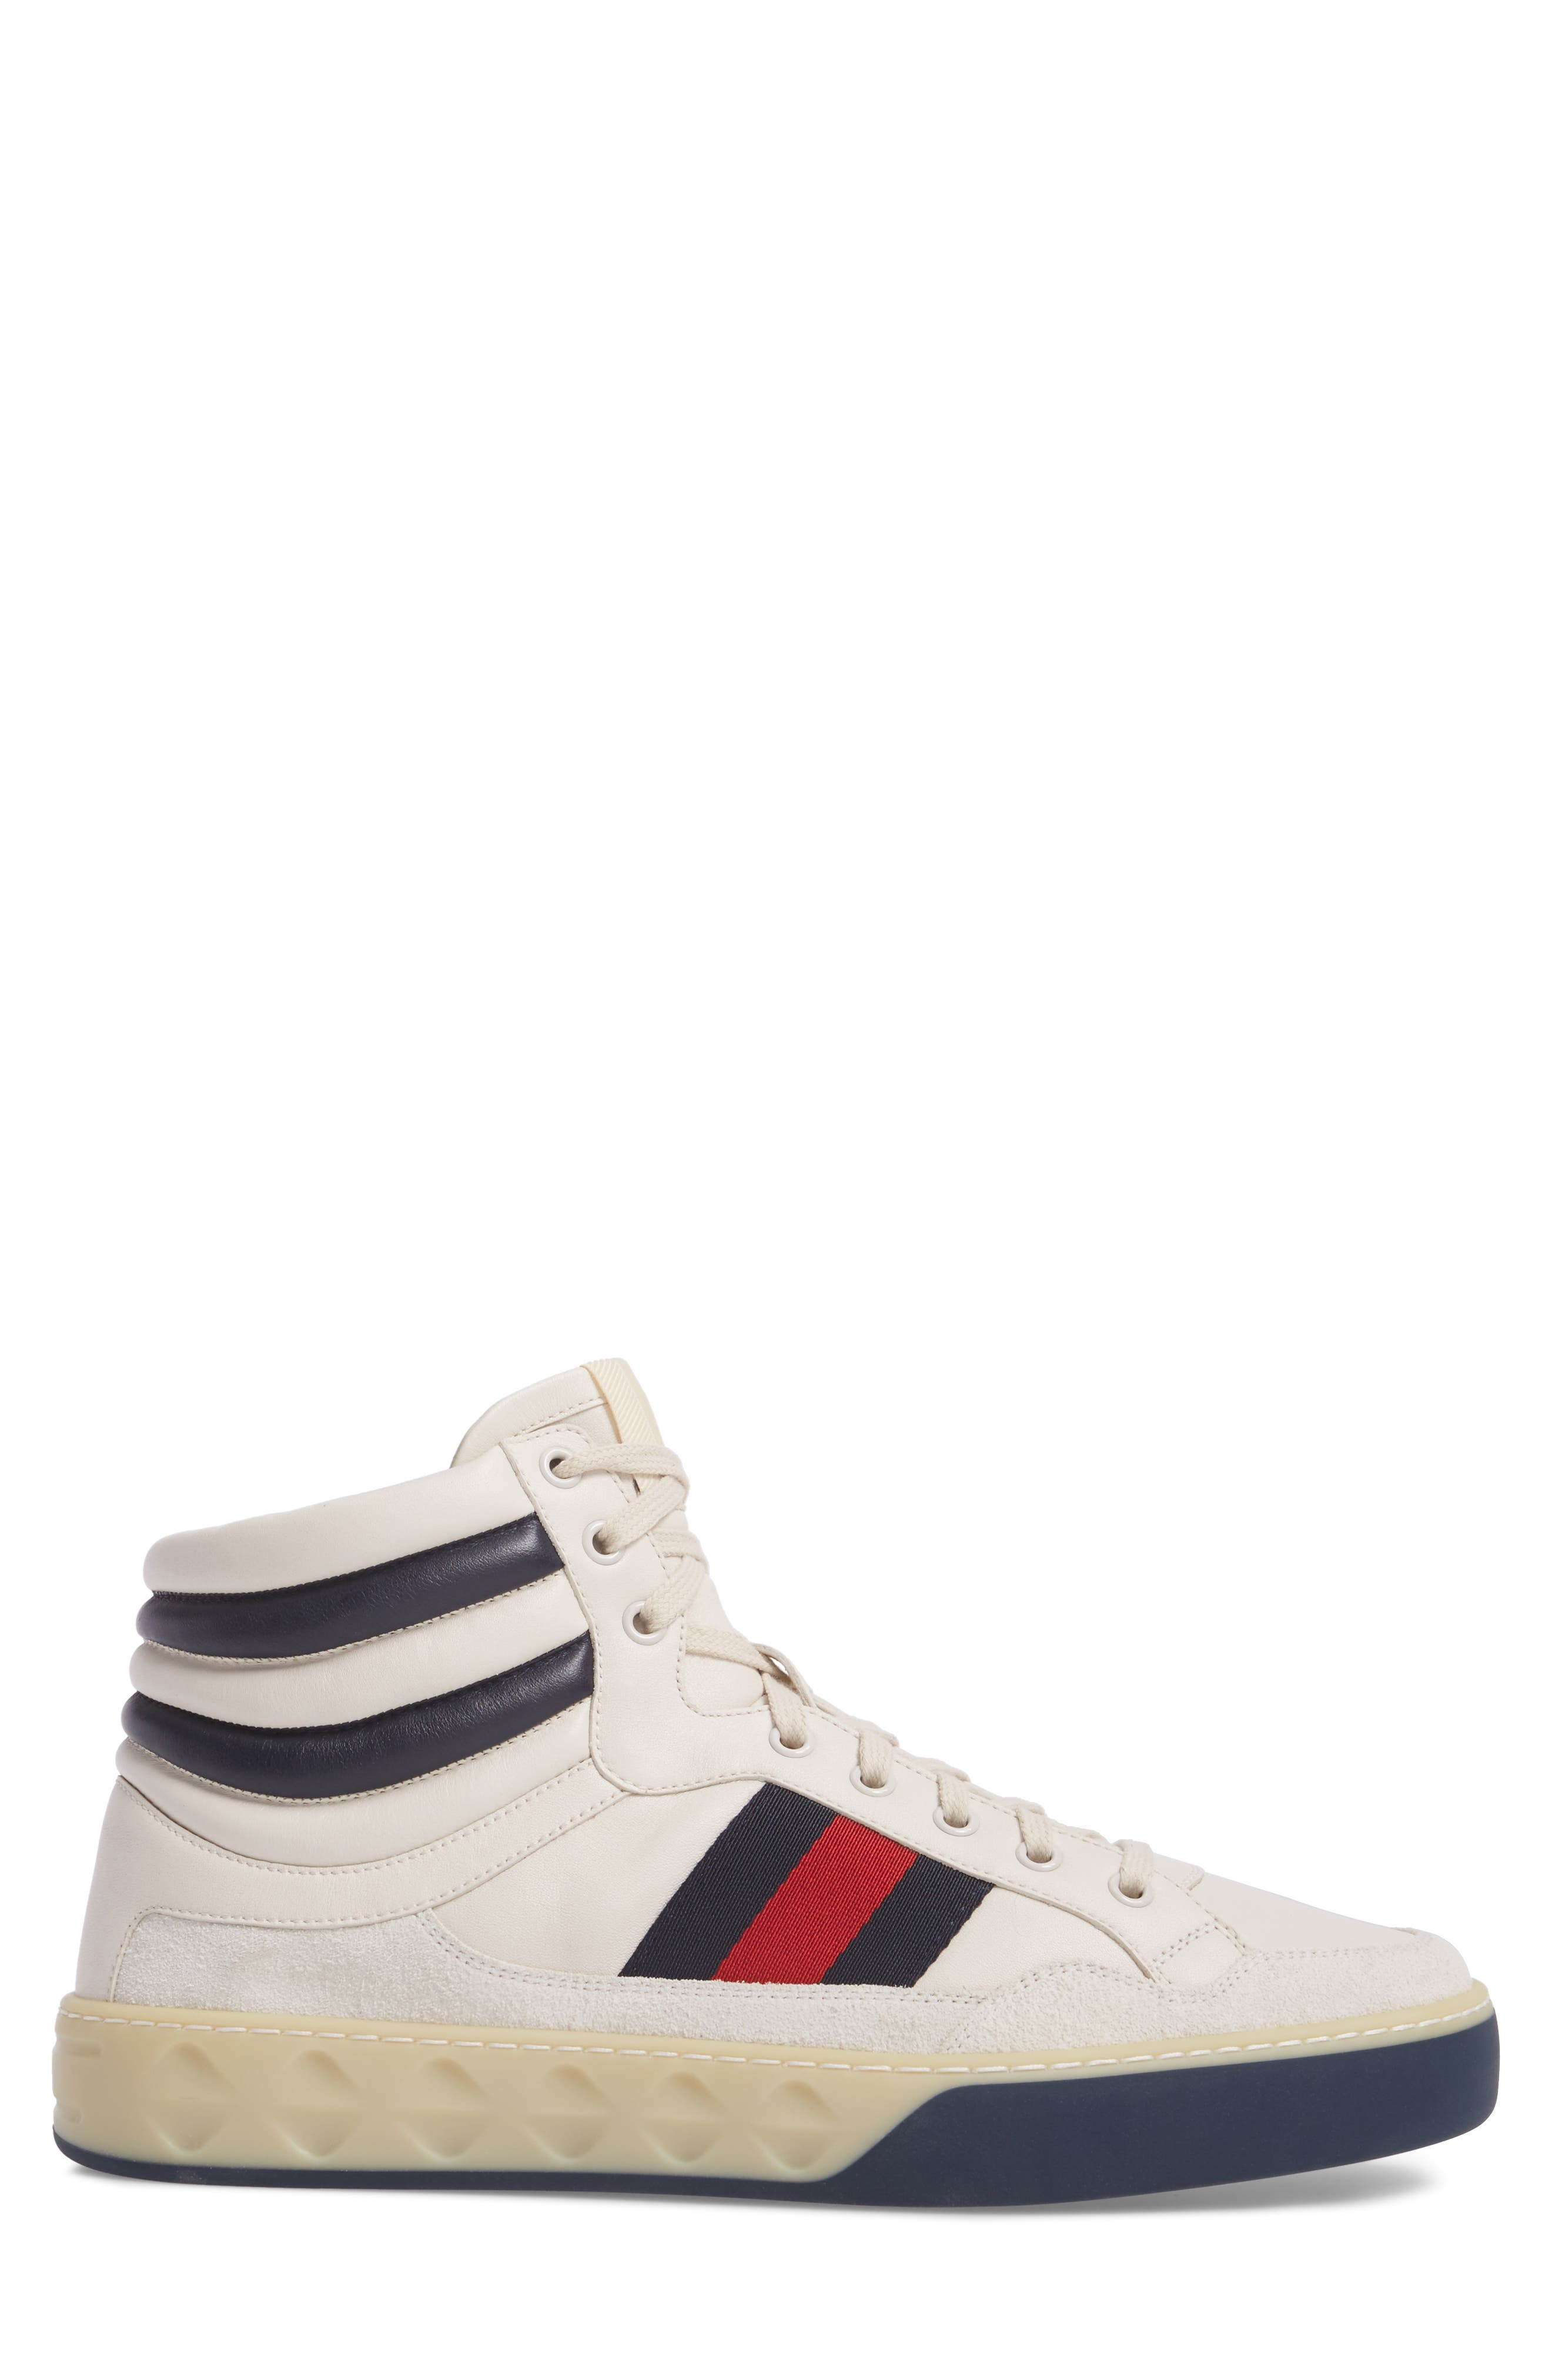 Leather High Top Sneaker,                             Alternate thumbnail 3, color,                             WHITE LEATHER/ SUEDE